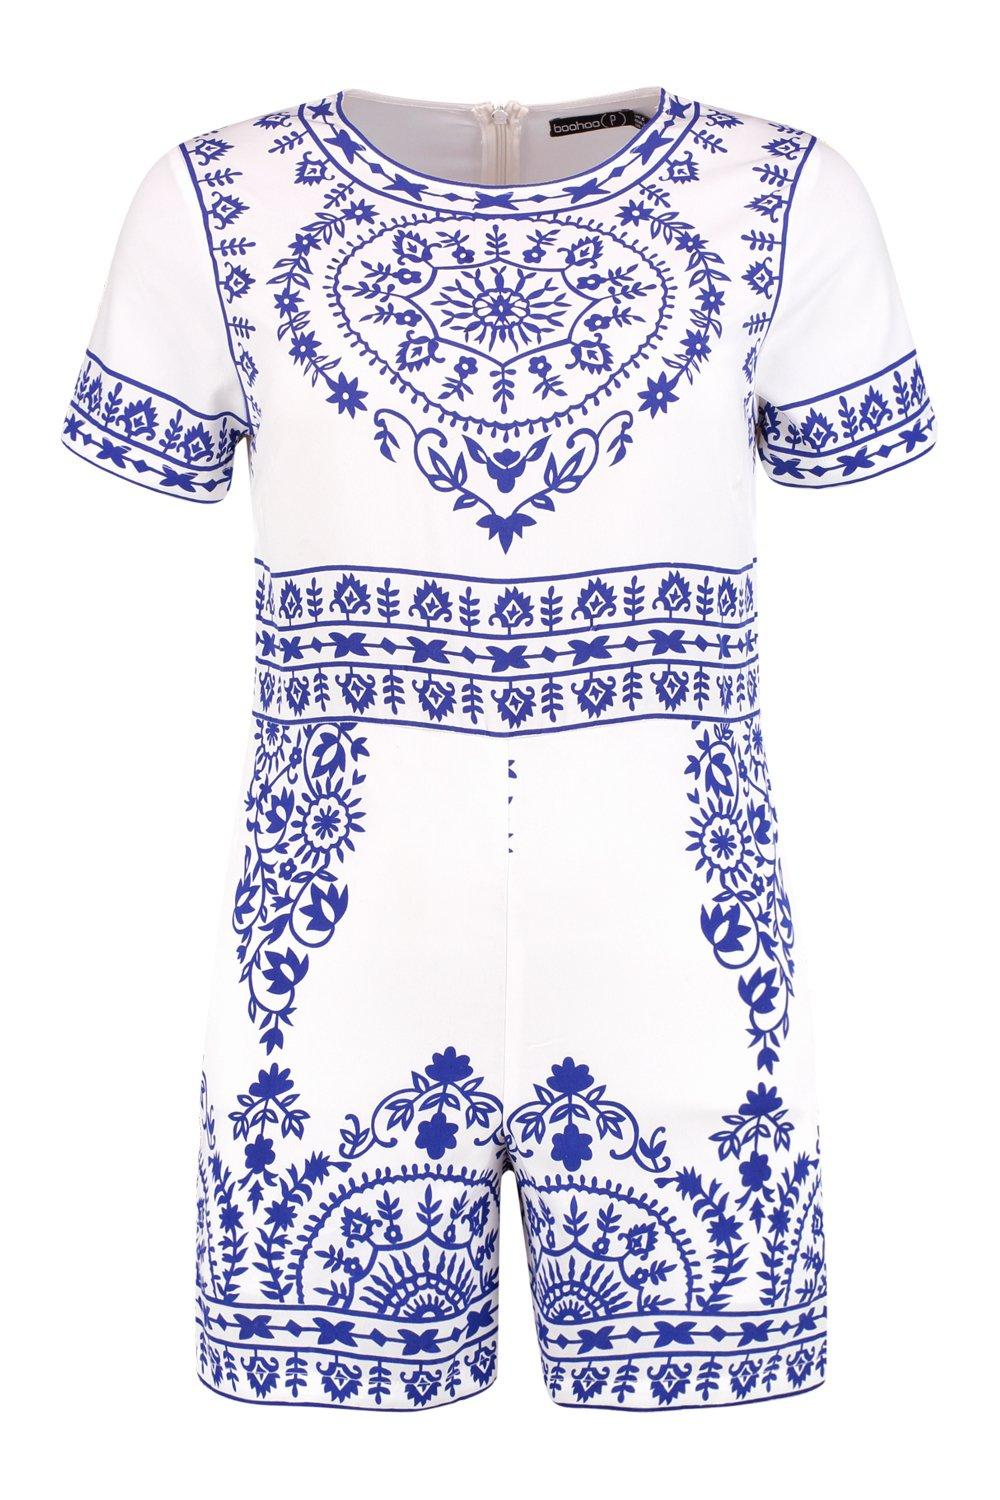 Print Playsuit Petite Print Placement Petite multi Petite multi Playsuit Print Placement Playsuit Placement qPqvBwOS